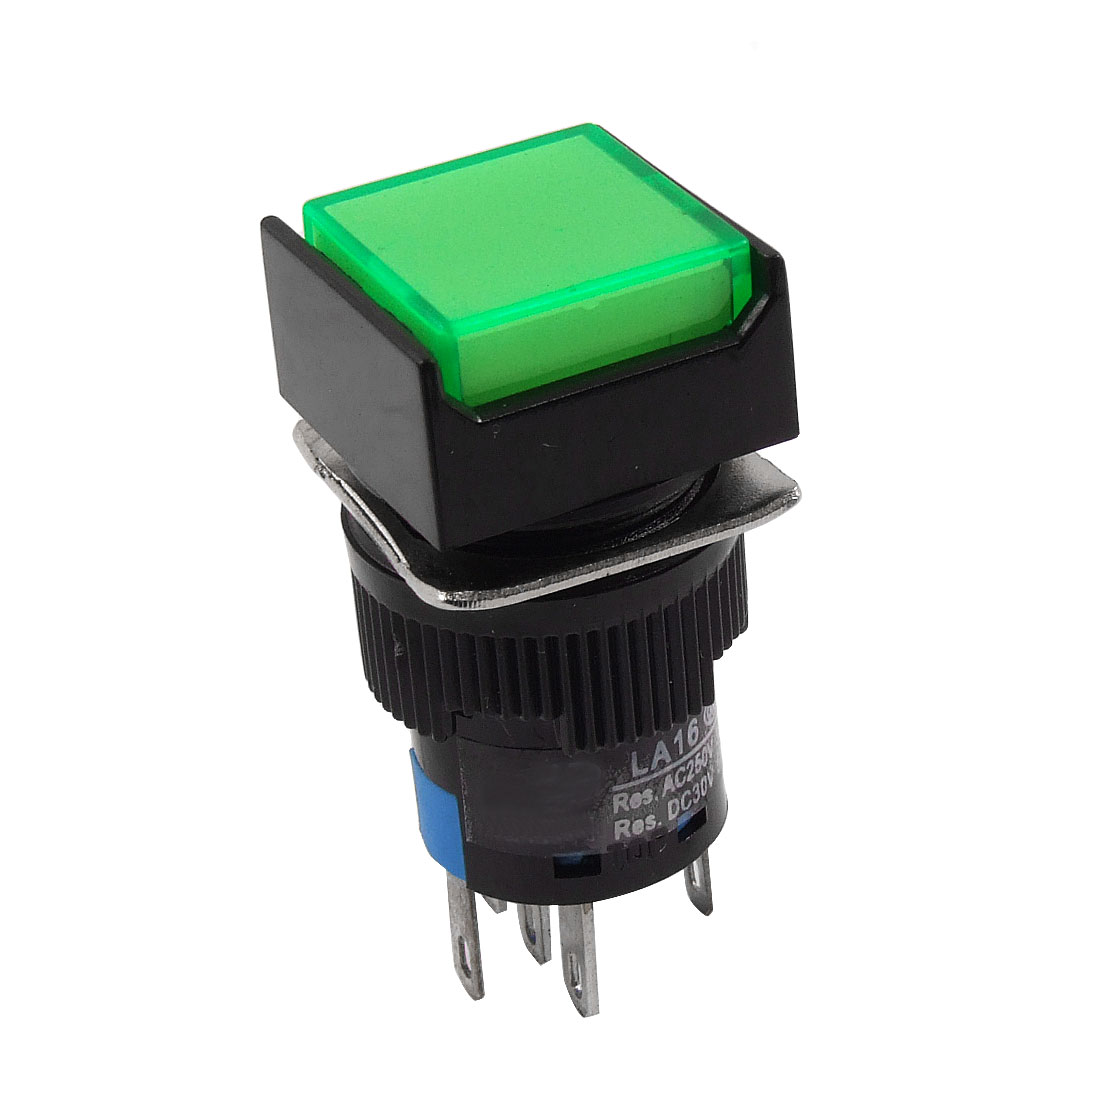 DC 24V Green Neon Light Square Momentary AC 3A/250V DC 5A/30V Pushbutton Switch